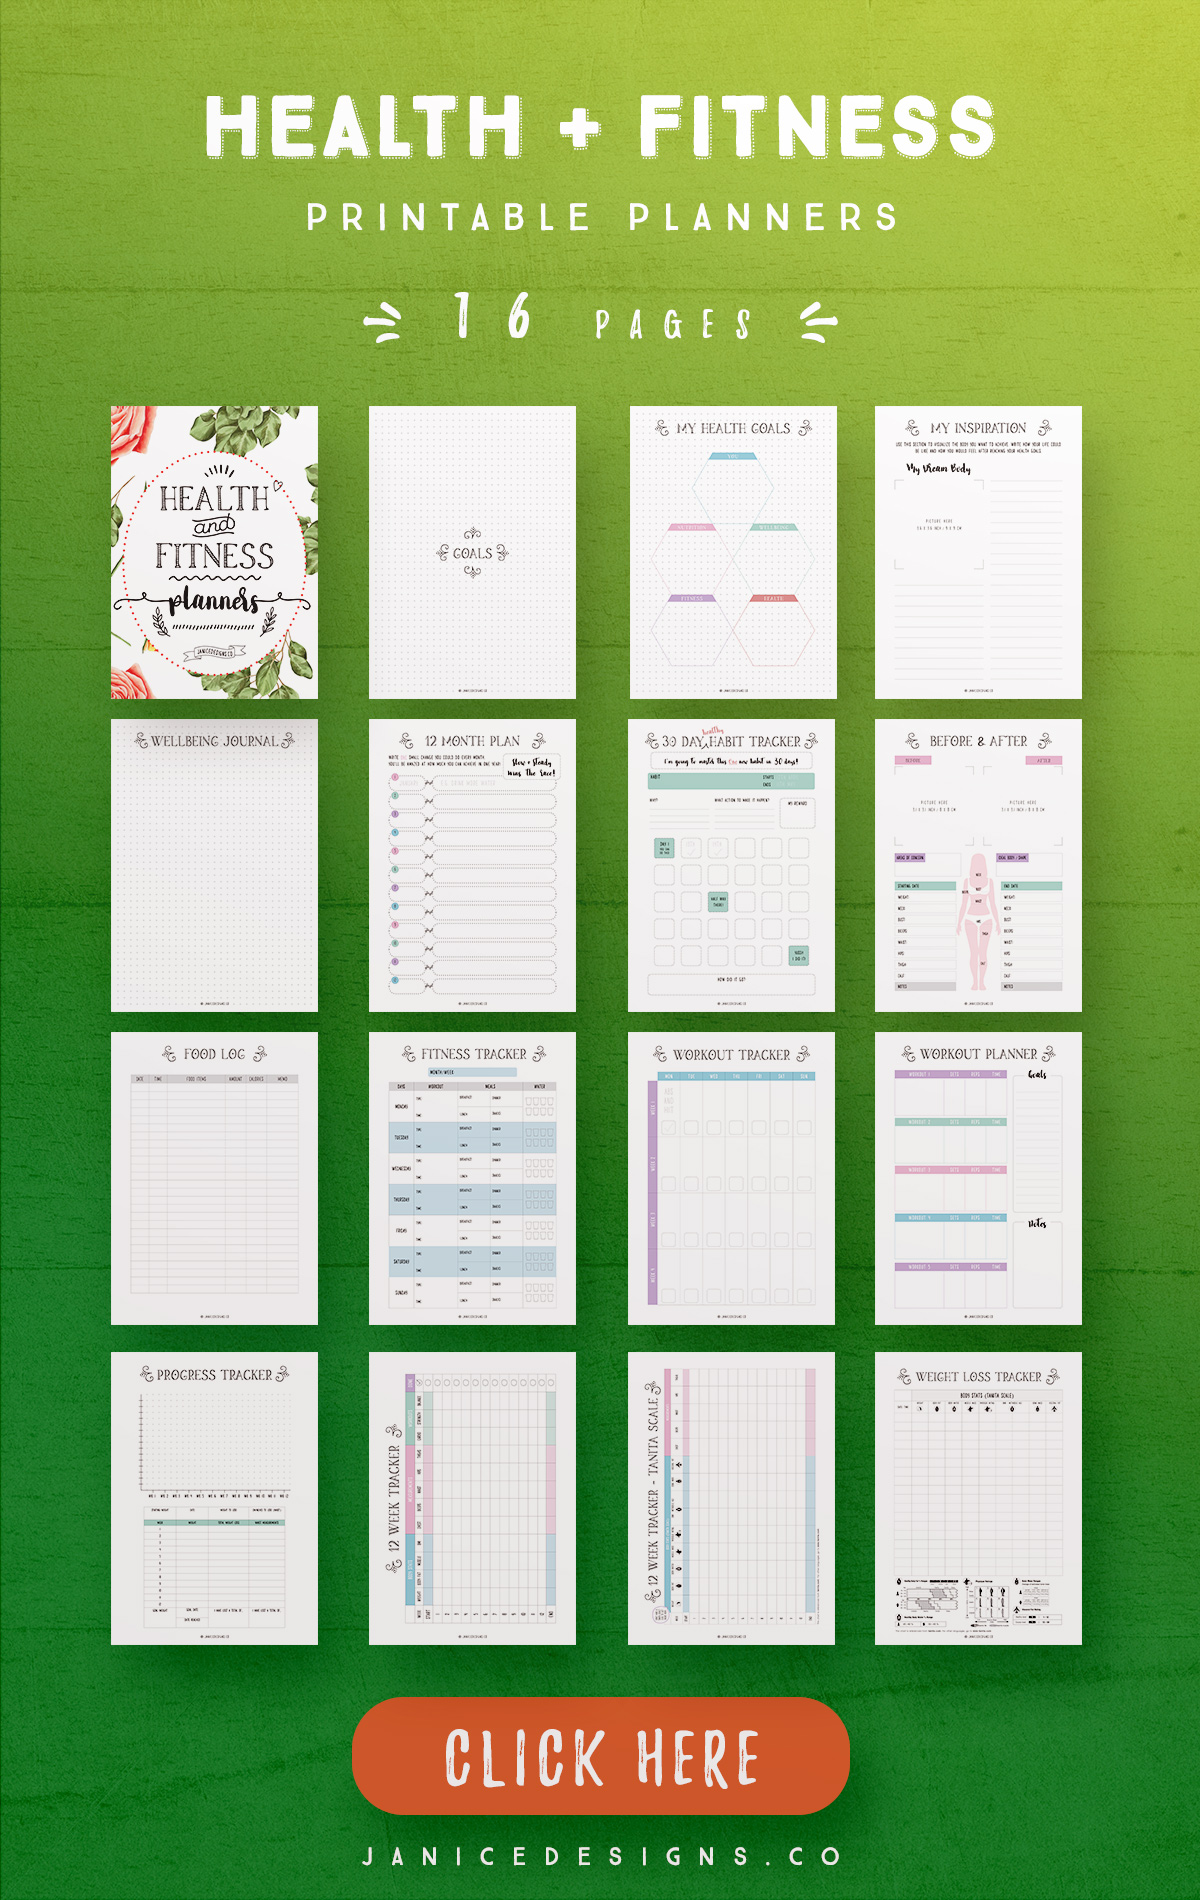 Health and Fitness Printable Planners - 16 Pages example image 3